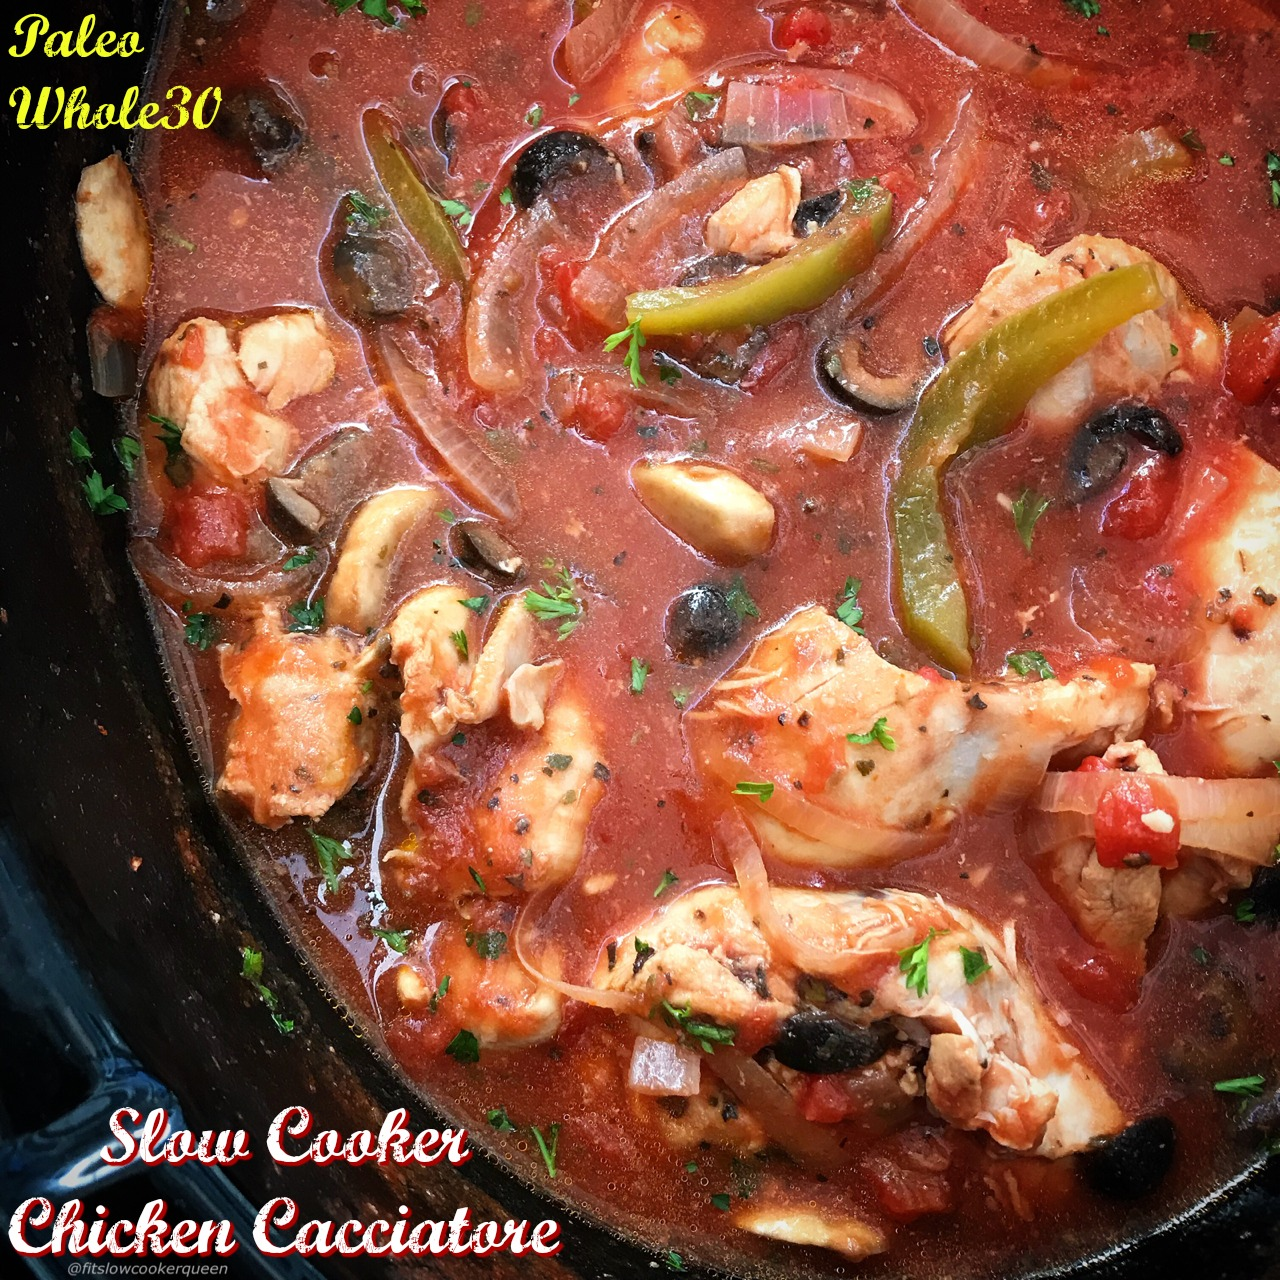 Chicken cacciatore is a classic Italian dish. This easy slow cooker version is paleo and whole30 but not lacking in flavor.